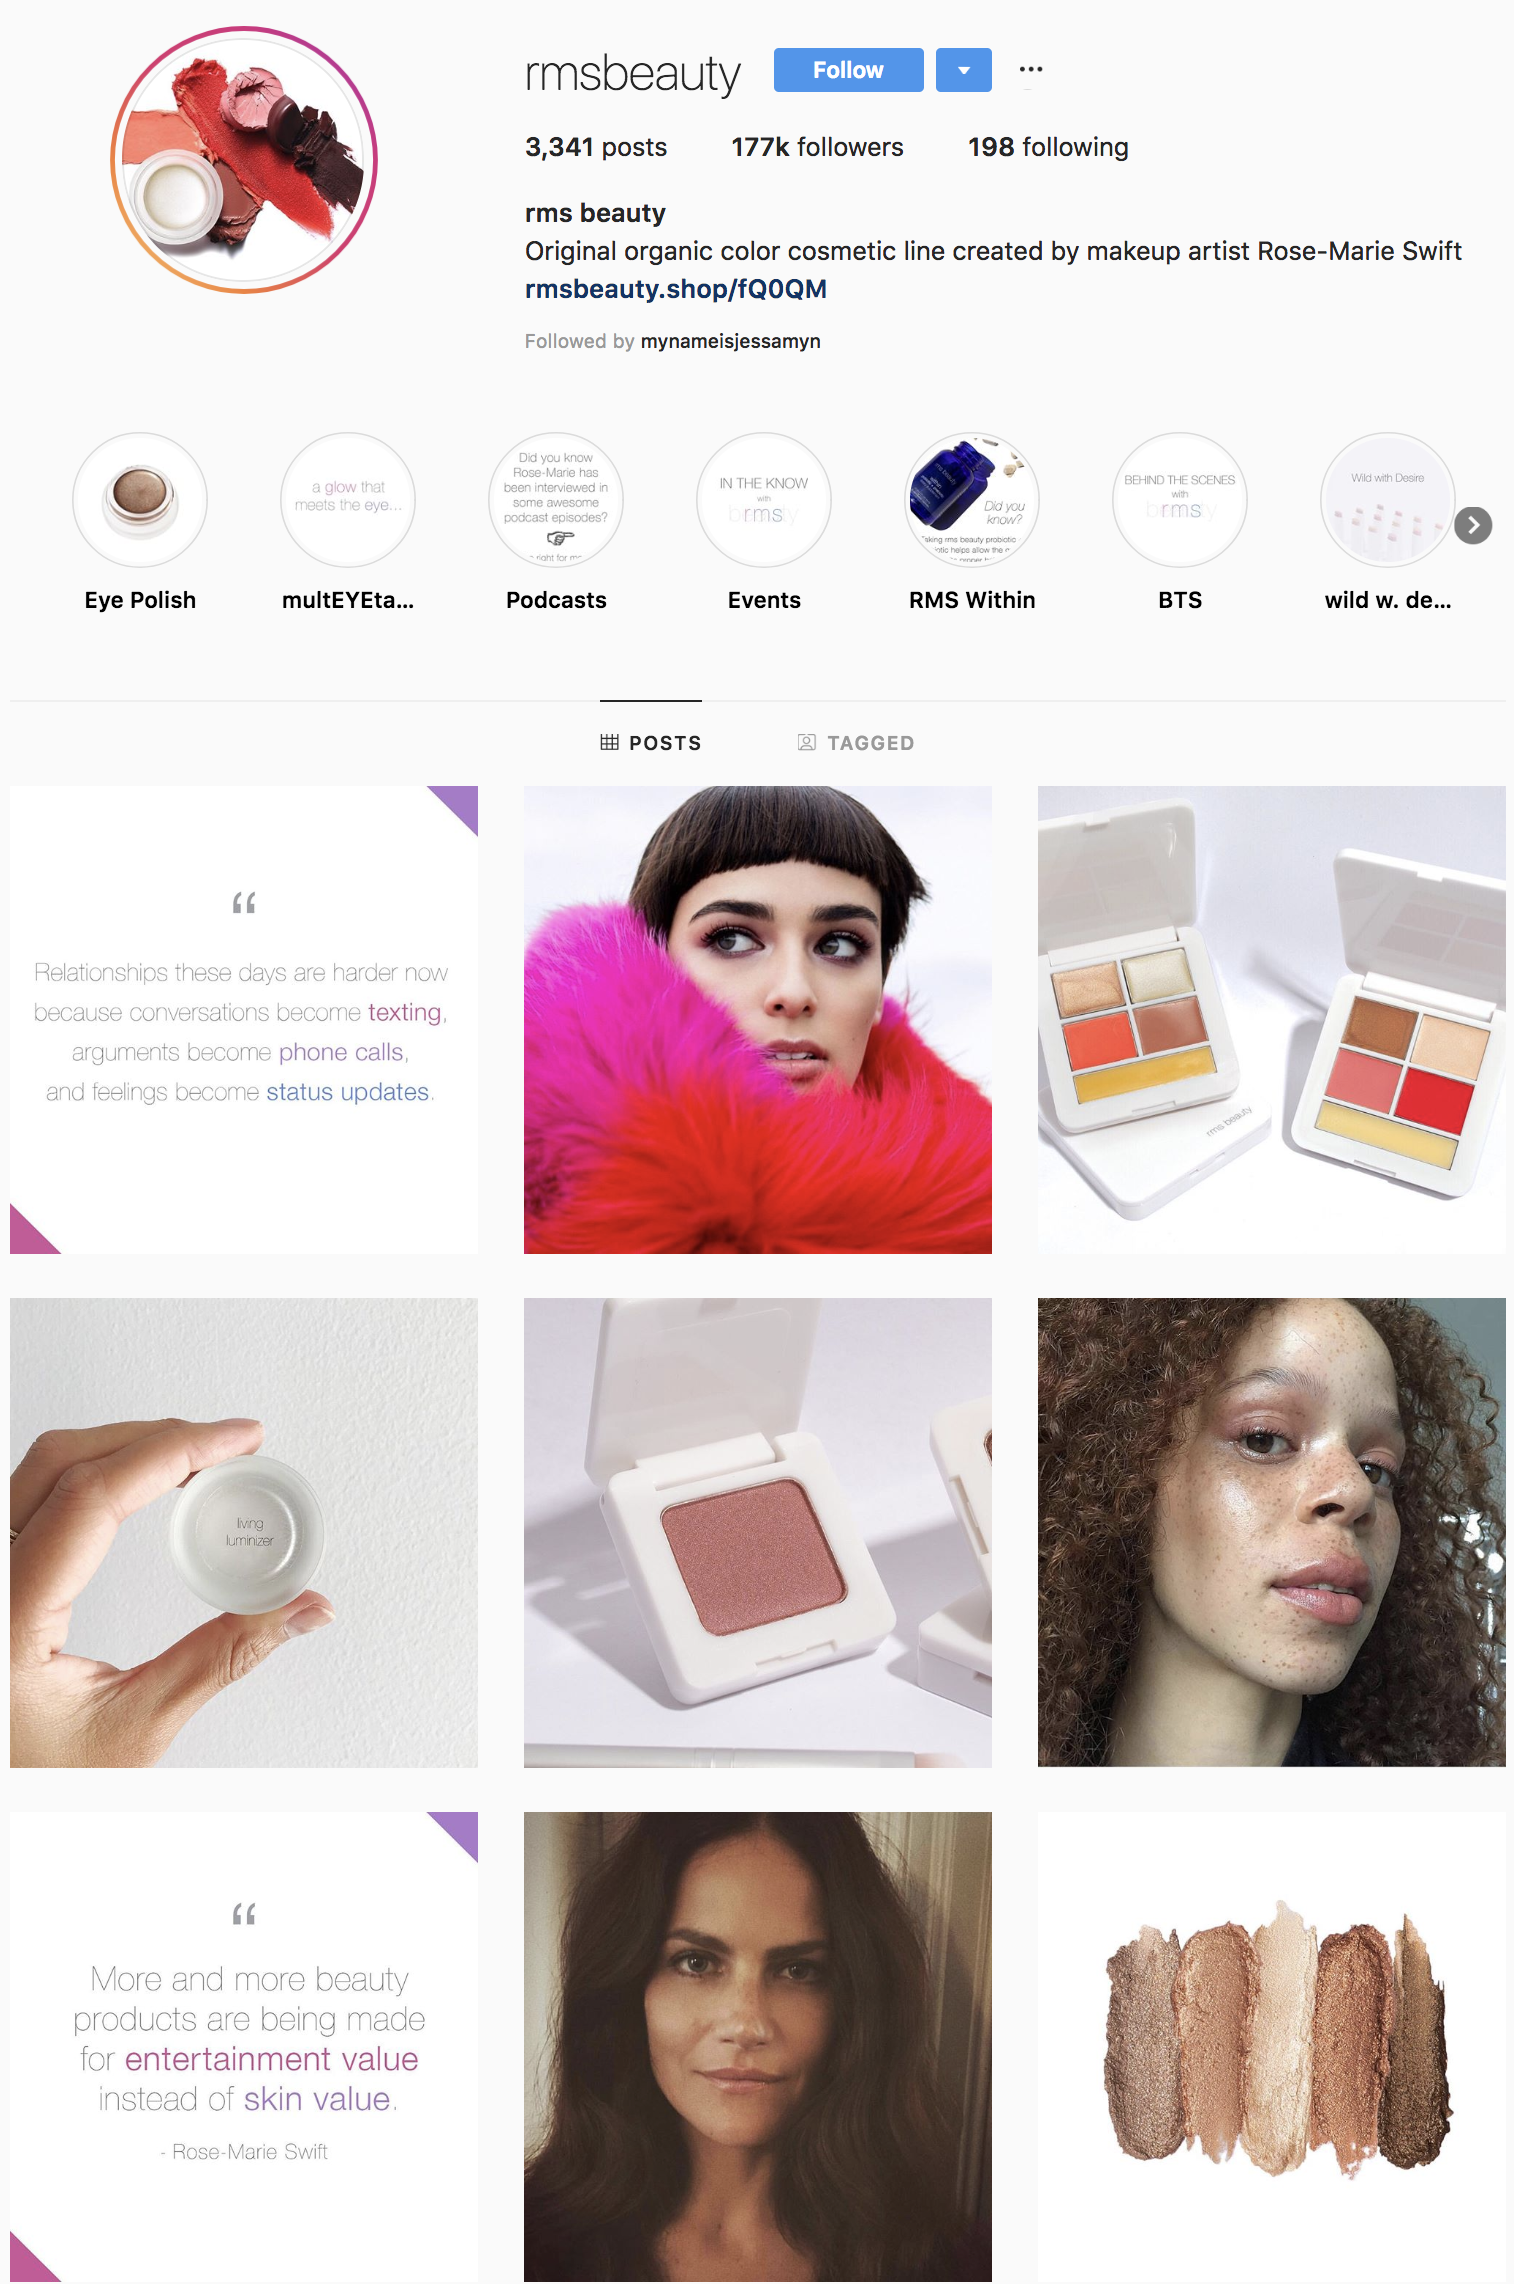 rms-beauty-instagram-influencer-profile